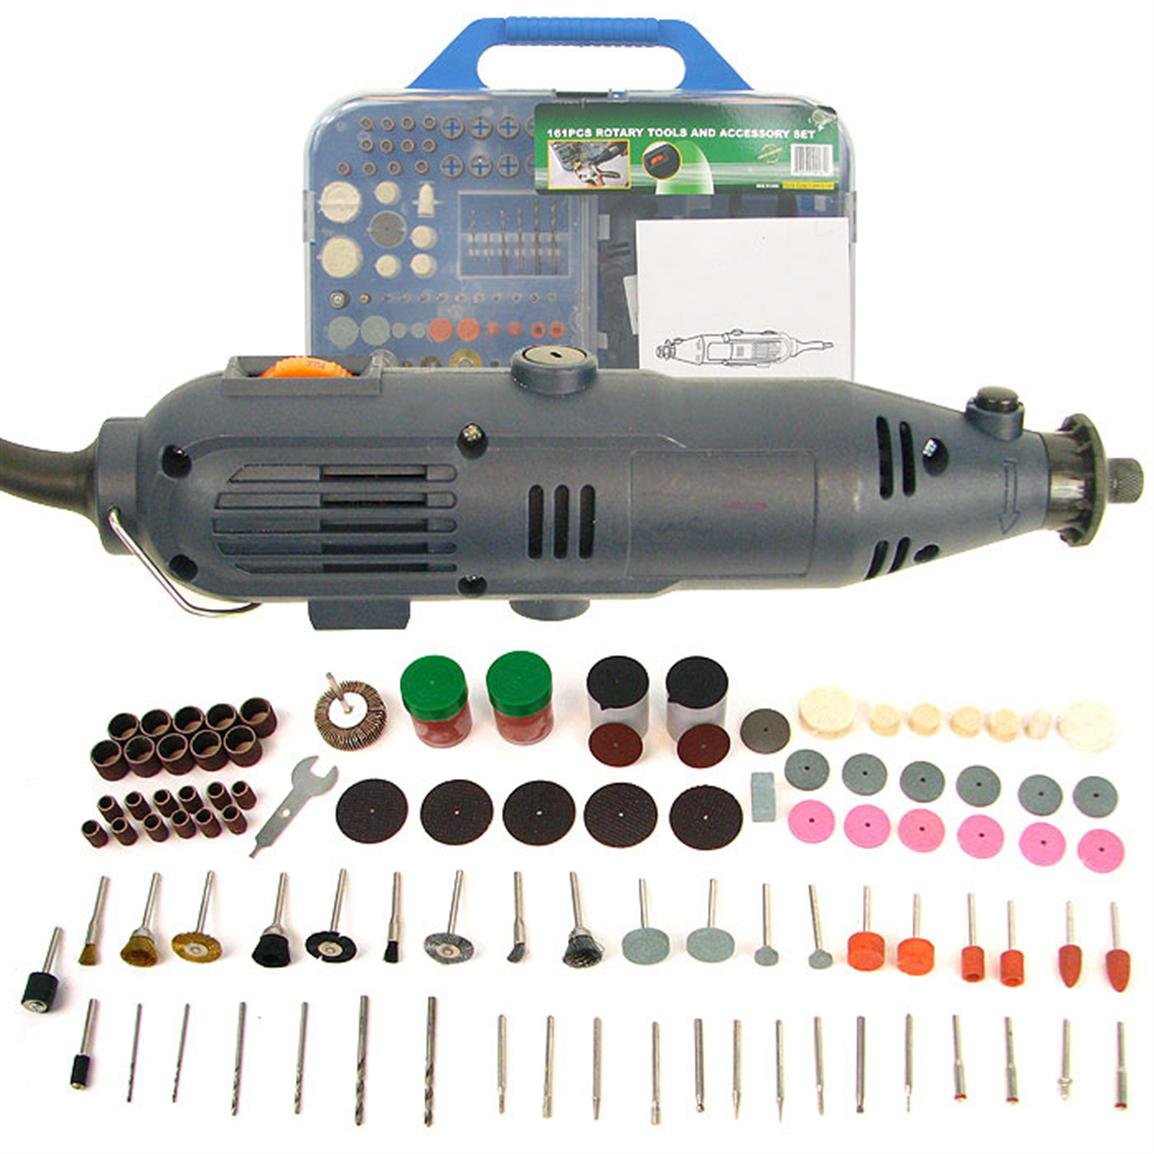 161-Pc. Trademark® Rotary Tool Set